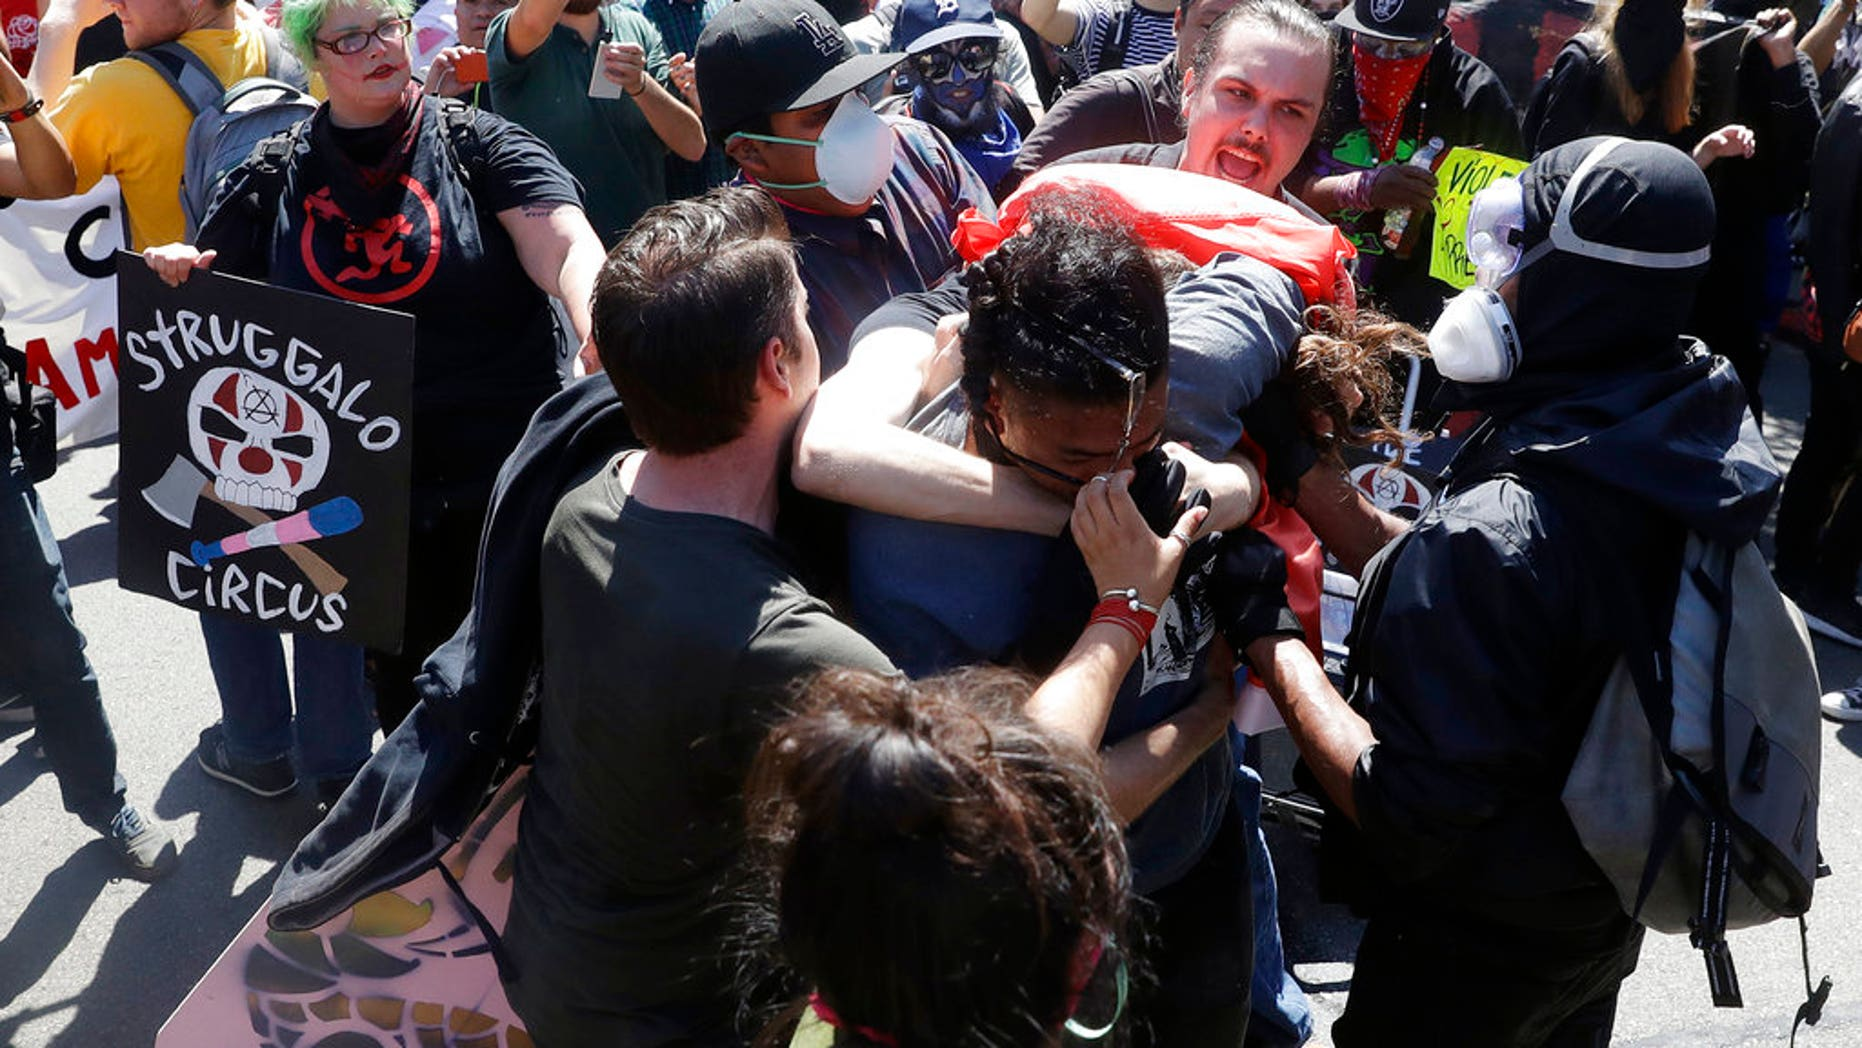 Demonstrators clash during a free speech rally on Aug. 27.